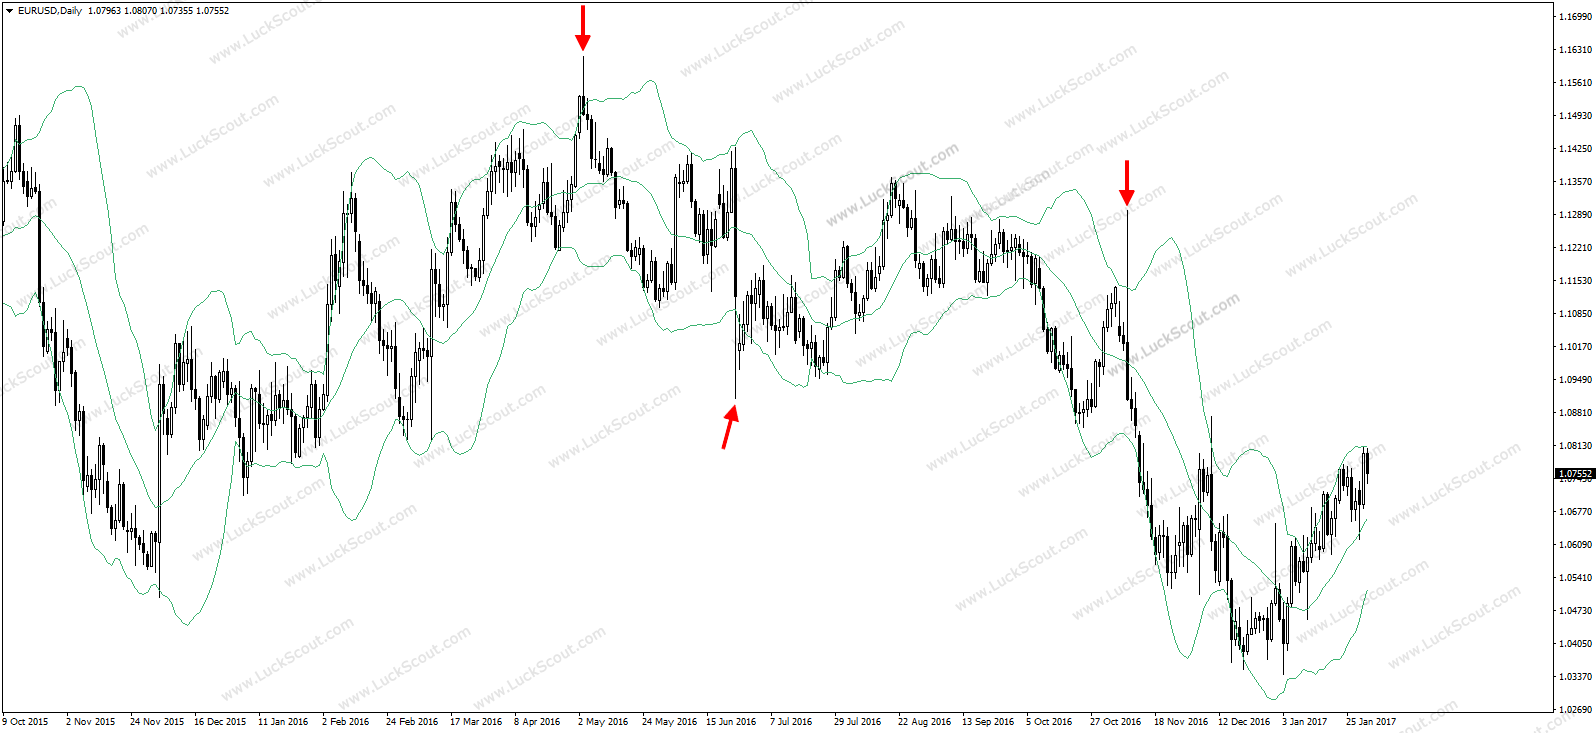 Examples of the price spikes on EUR/USD daily chart.